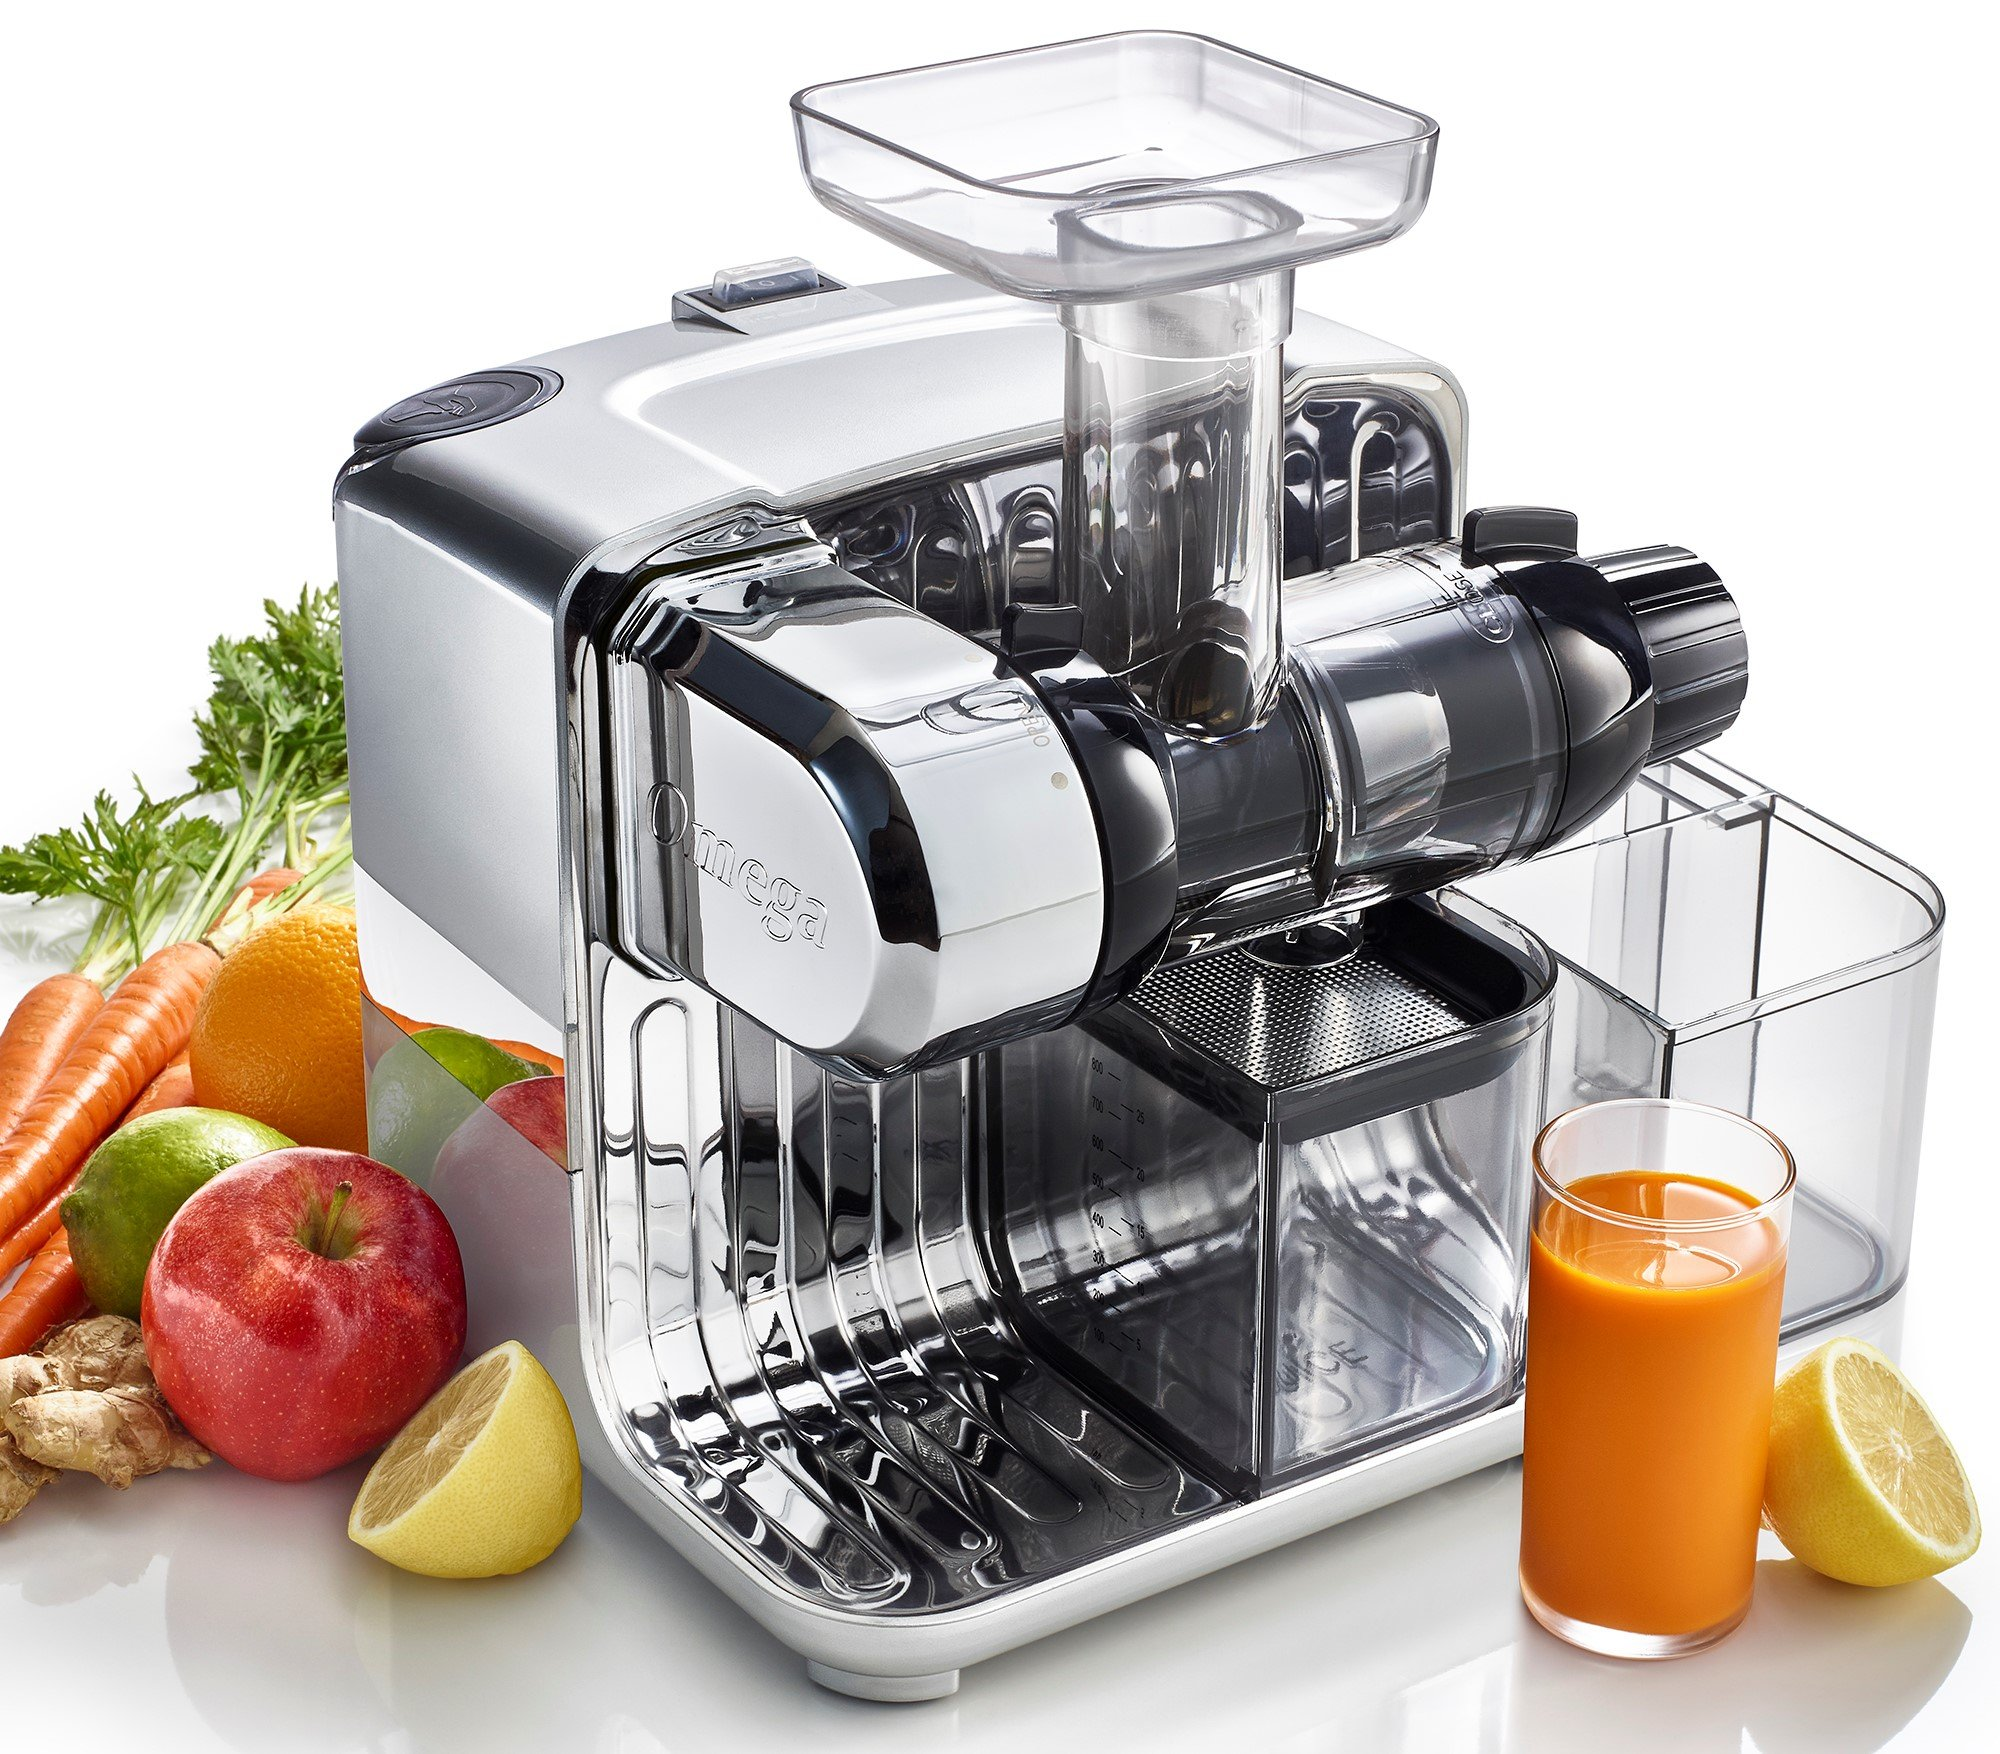 Omega CUBE300S Cube Nutrition Center Juicer Creates Fruit Vegetable and Wheatgrass Juice Slow Masticating Compact Design with Convenient, 200-Watts, Silver by Omega